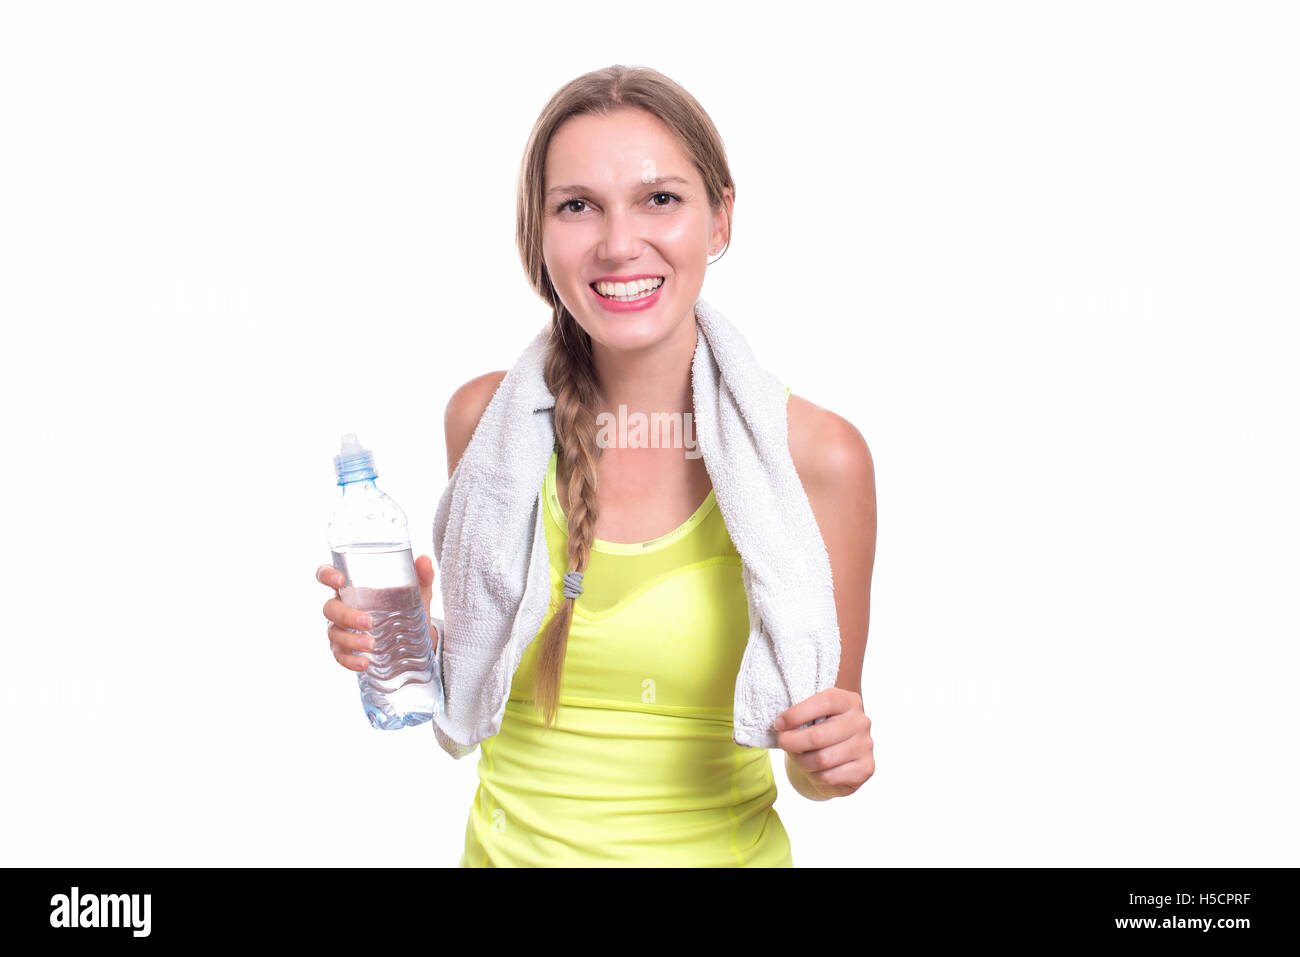 Young gym woman with water bottle smiling isolated on white Stock Photo